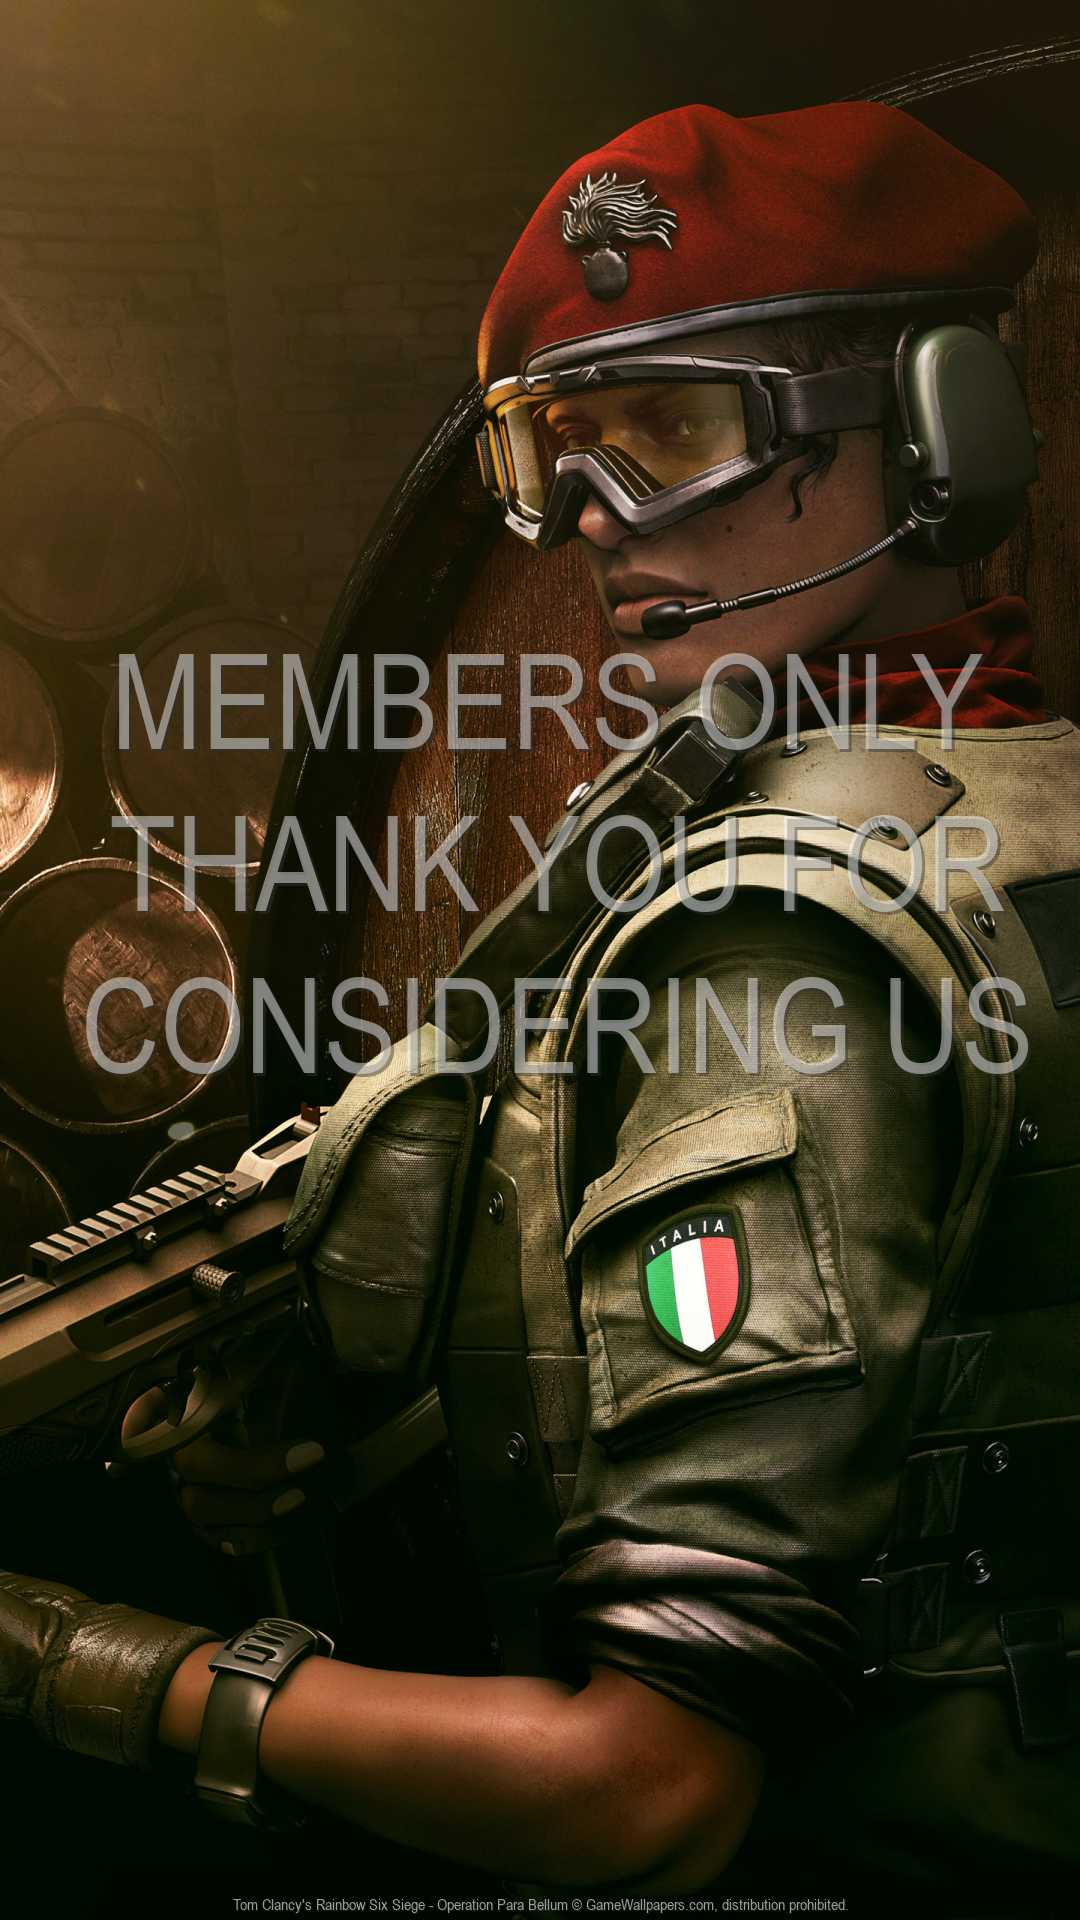 Tom Clancy's Rainbow Six: Siege - Operation Para Bellum 1080p Vertical Mobile wallpaper or background 02